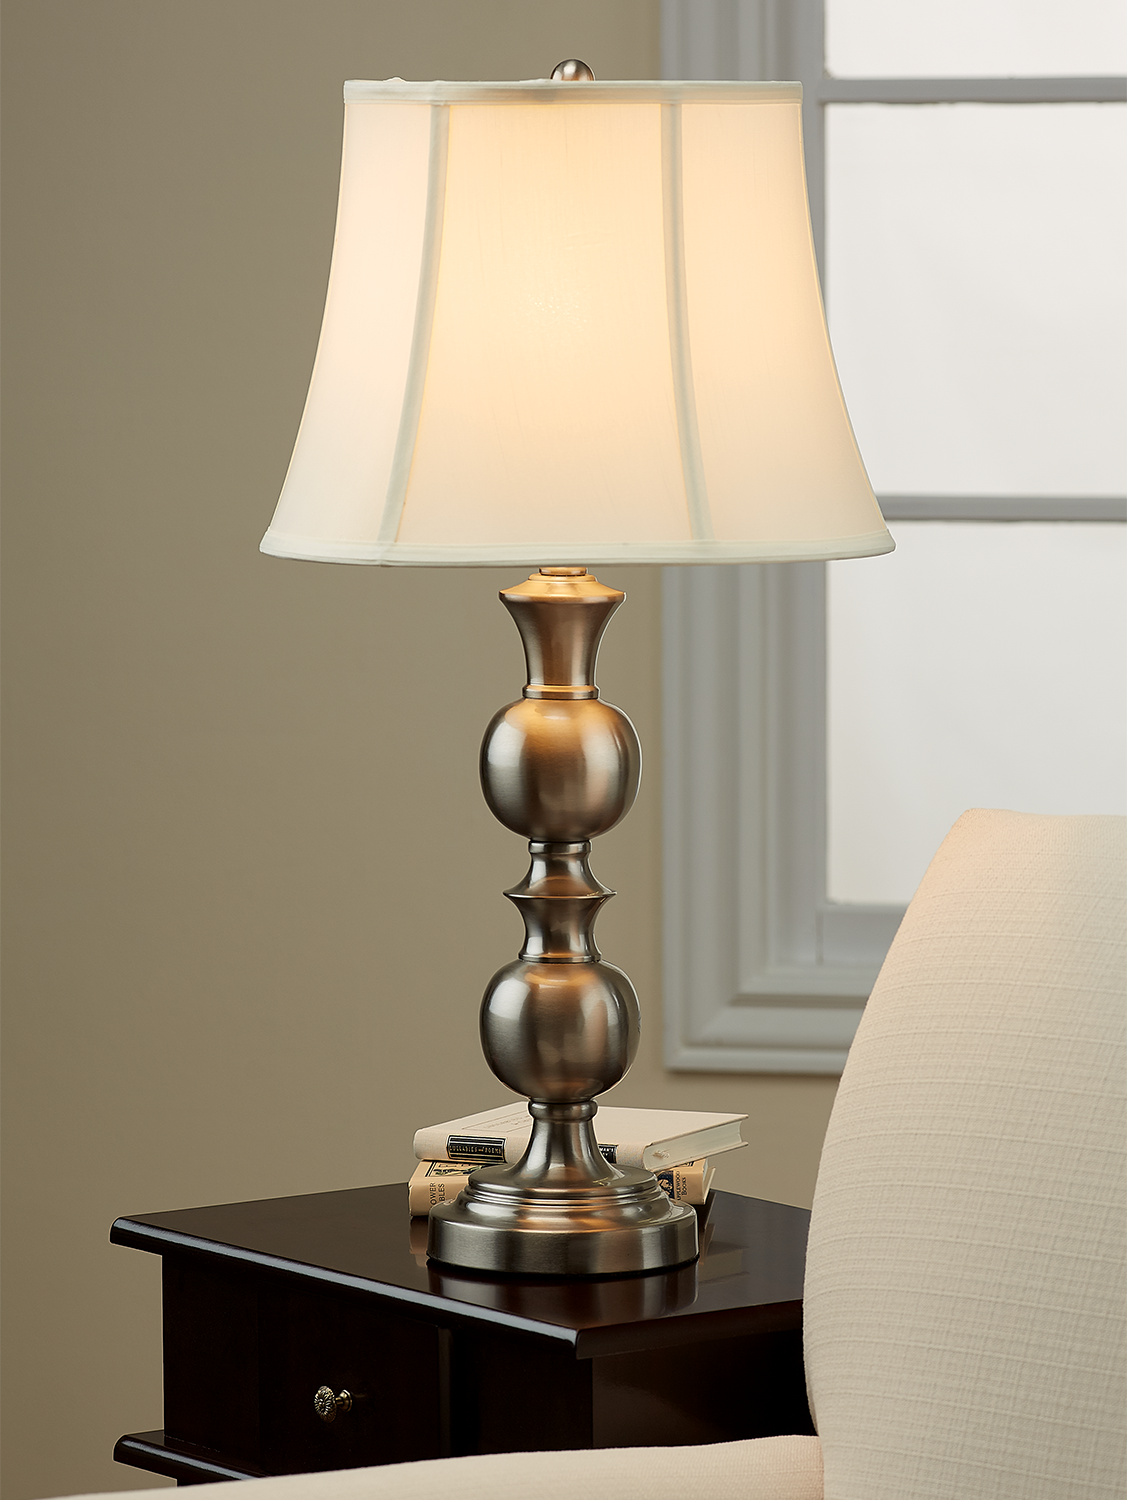 lamps and lighting accessories | home lighting solutions